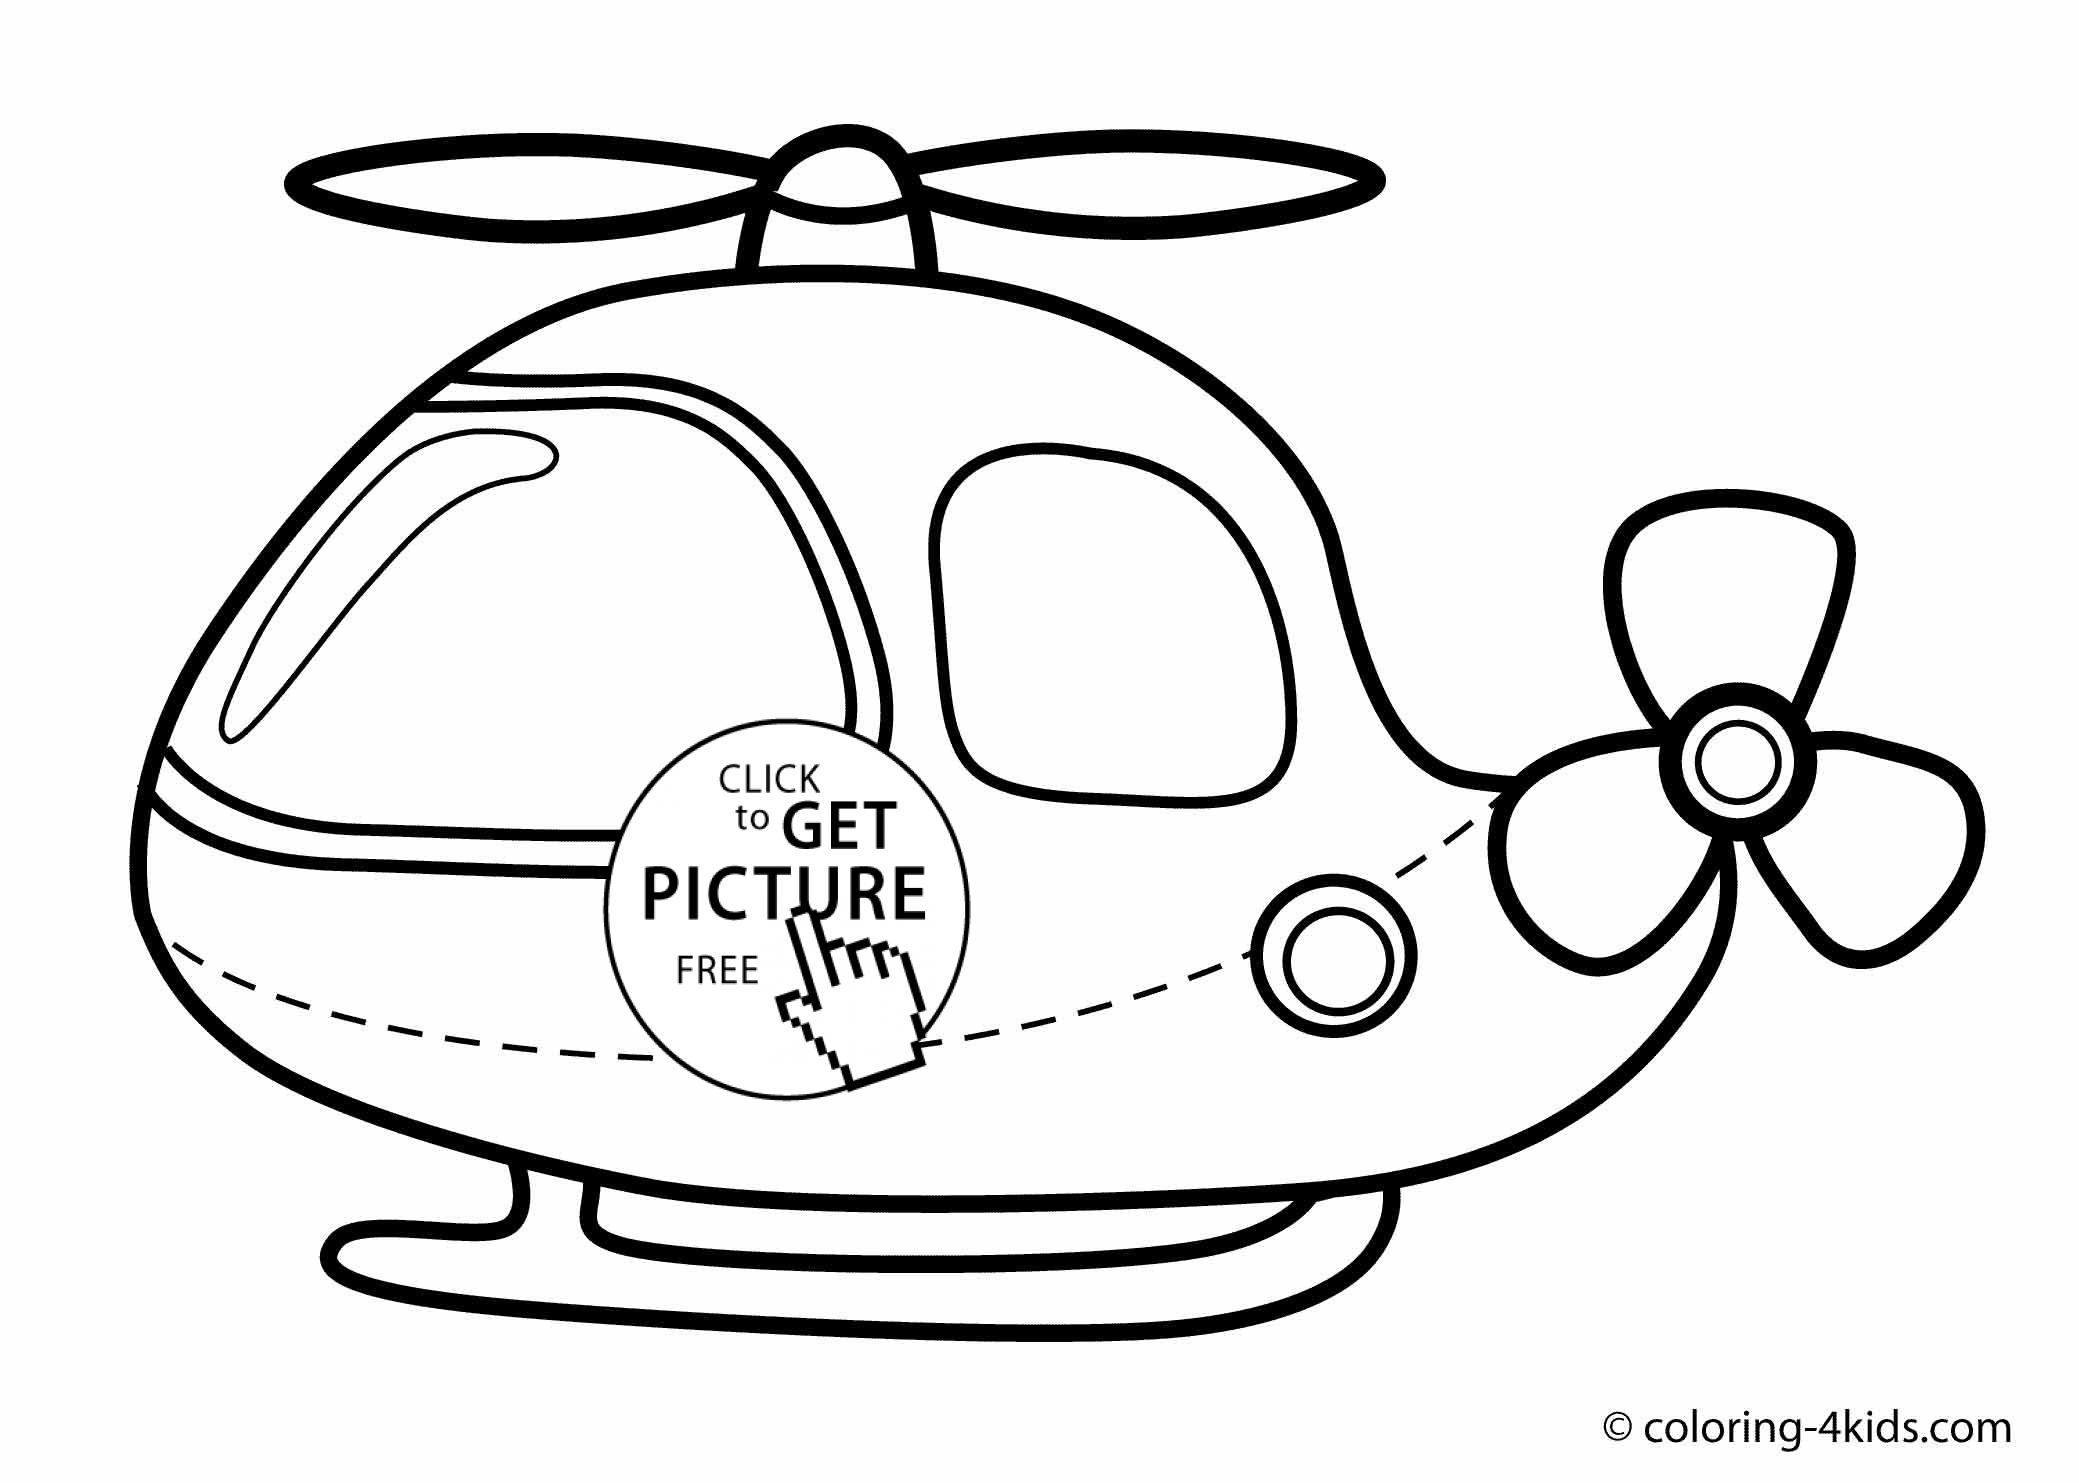 Helicopter coloring page for kids, printable free helicopter coloring books